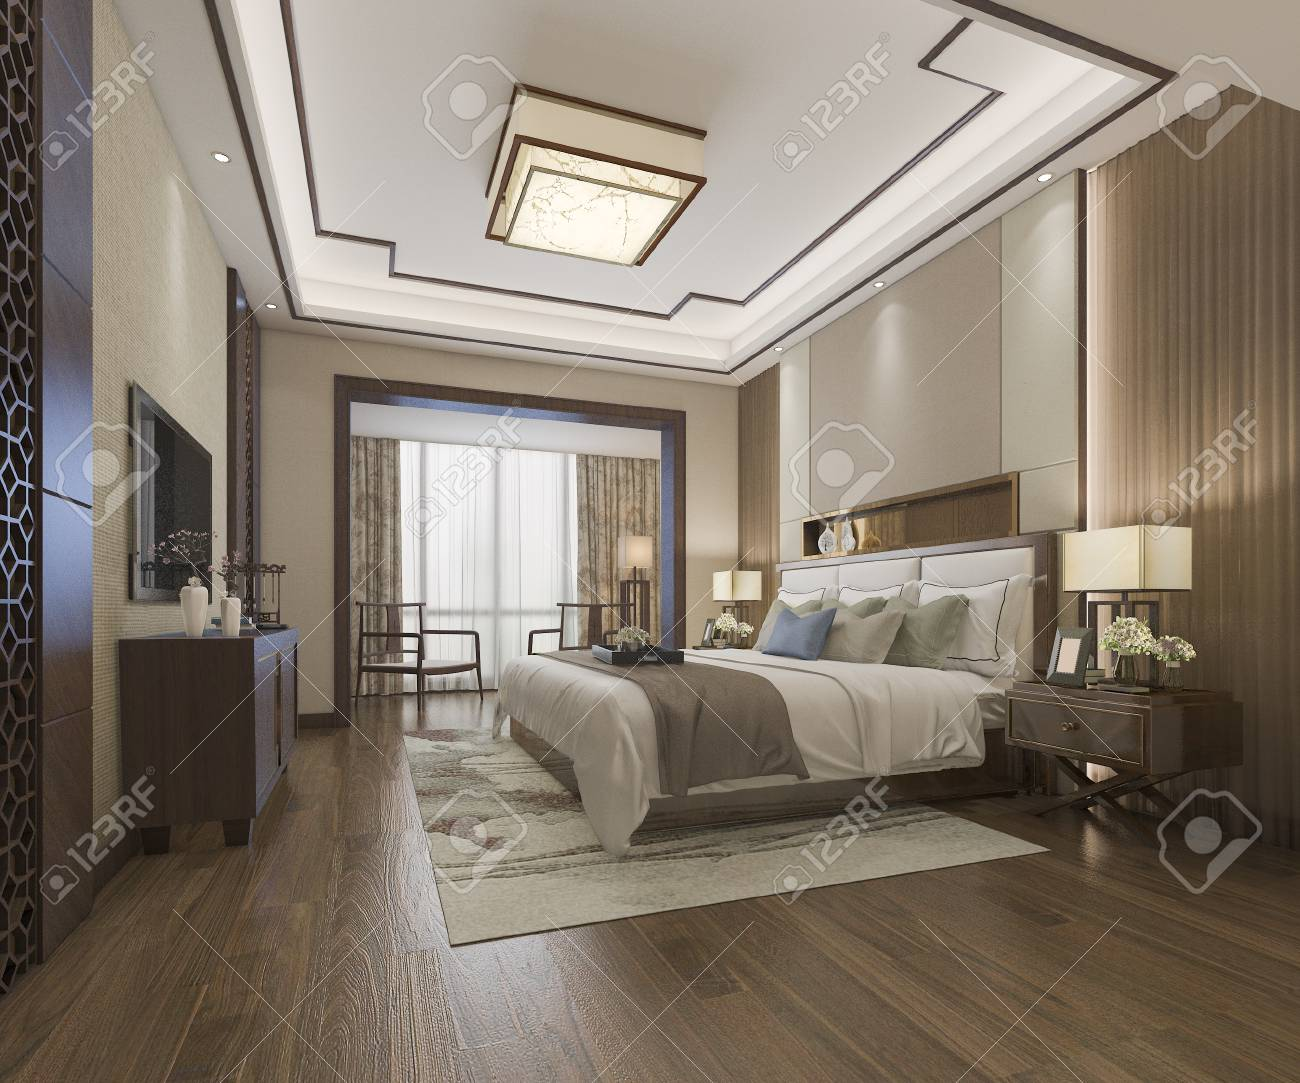 3d Rendering Beautiful Luxury Chinese Bedroom Suite In Hotel Stock Photo Picture And Royalty Free Image Image 106948390